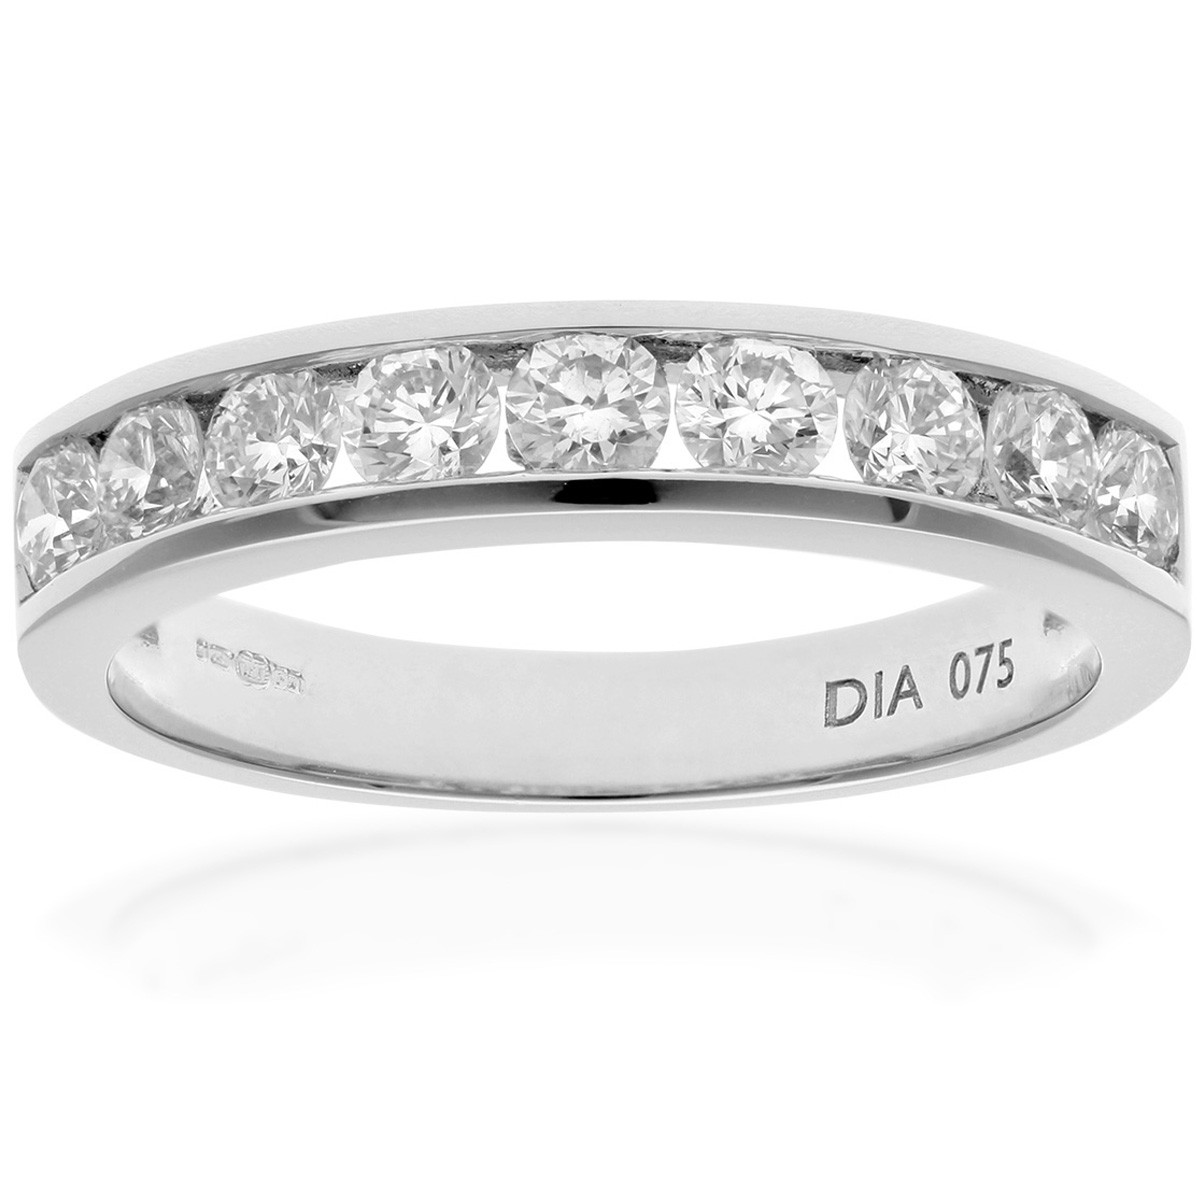 18CT WHITE GOLD 0.75CT DIAMOND 9 STONE CHANNEL SET 1/2 ETERNITY RING